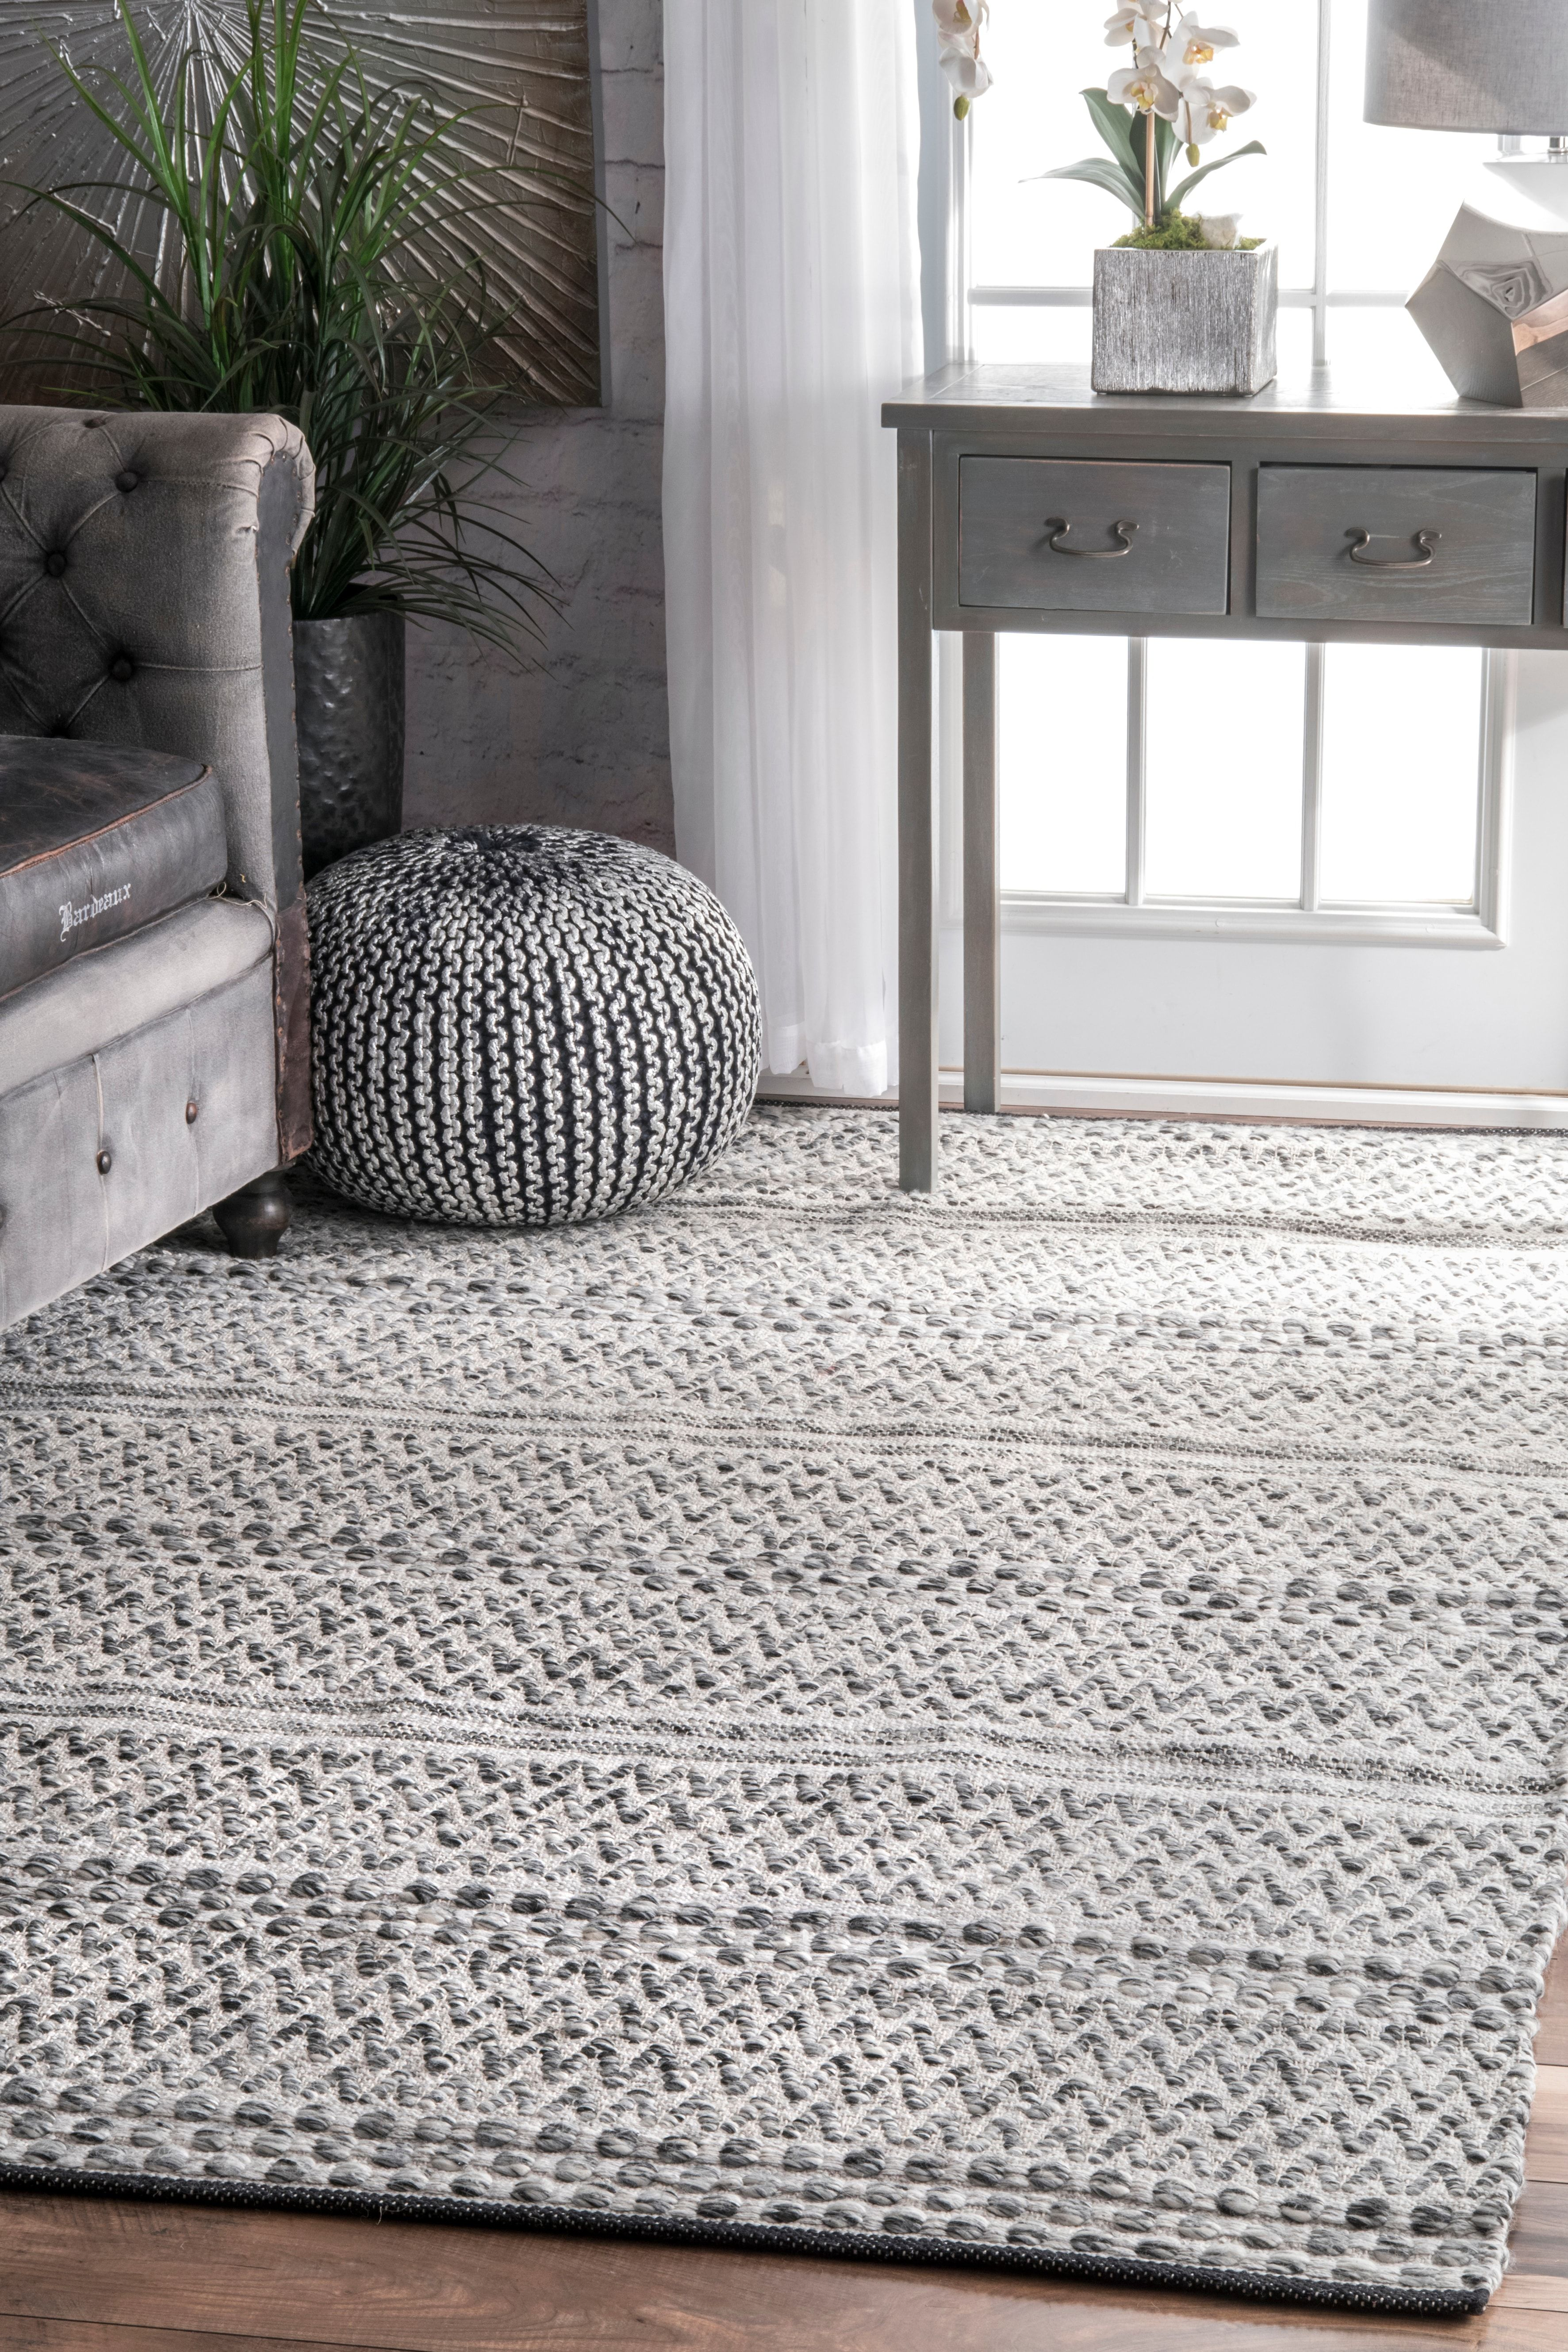 selke playroom style lauren progress rug mcbride rugs annie home cottage